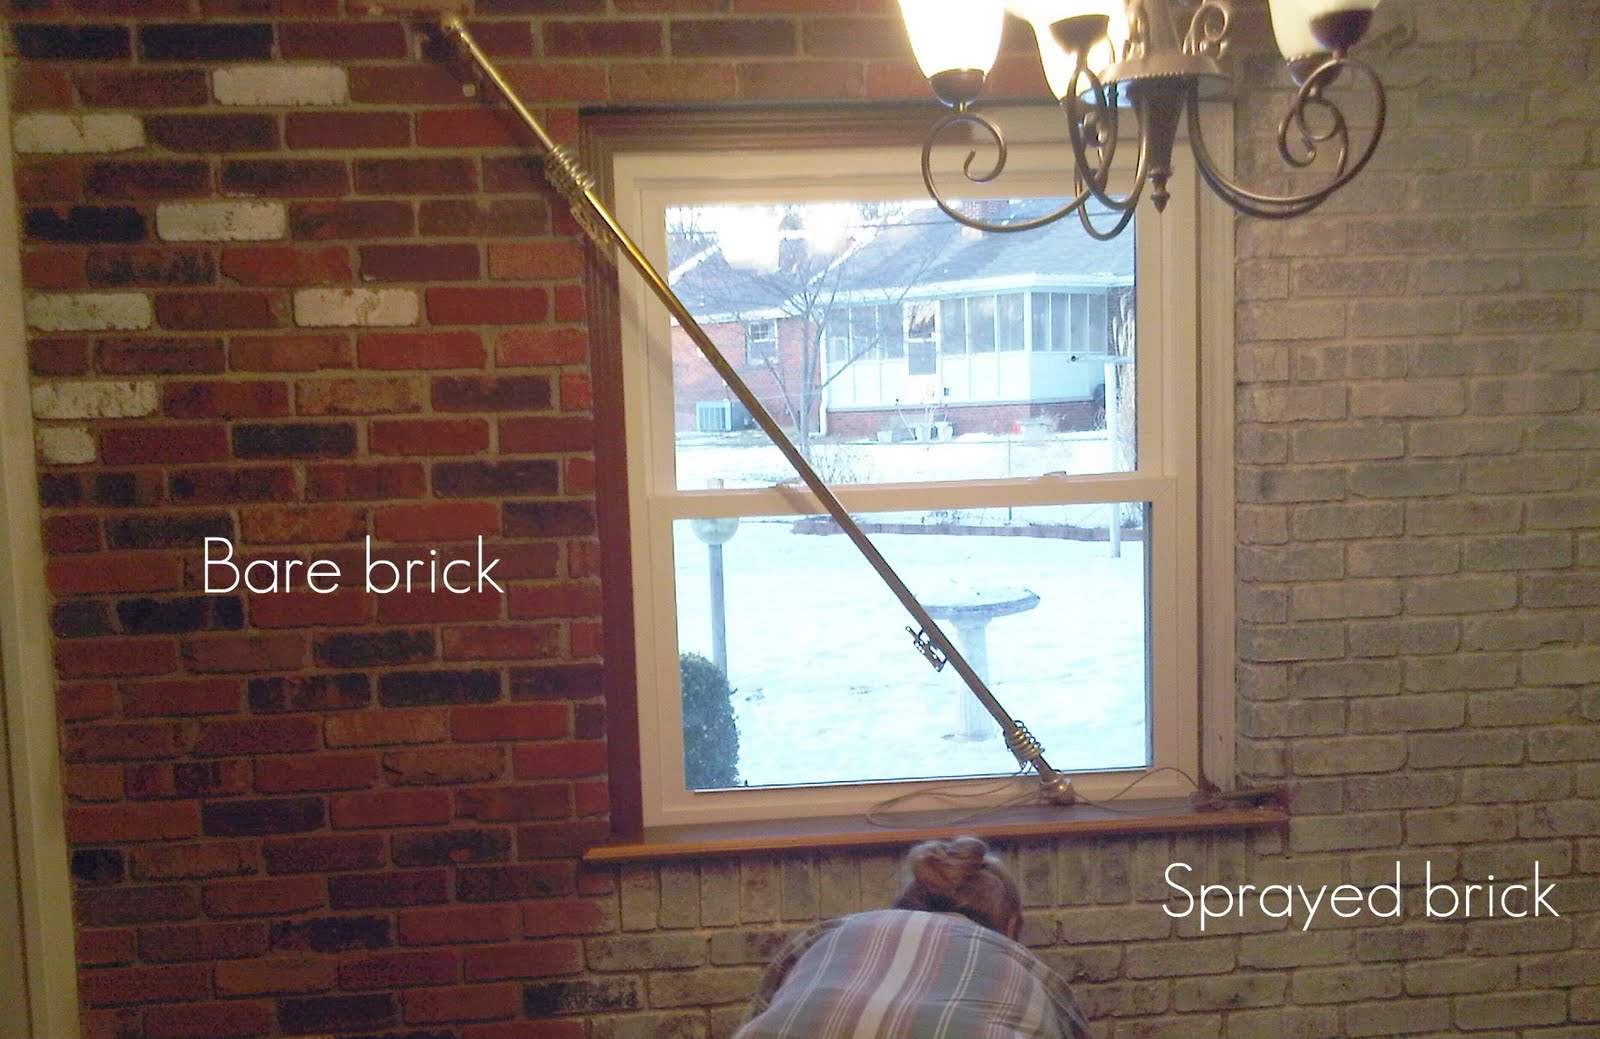 Peachy Painting Bricks Is Easy The Girl Creative Largest Home Design Picture Inspirations Pitcheantrous